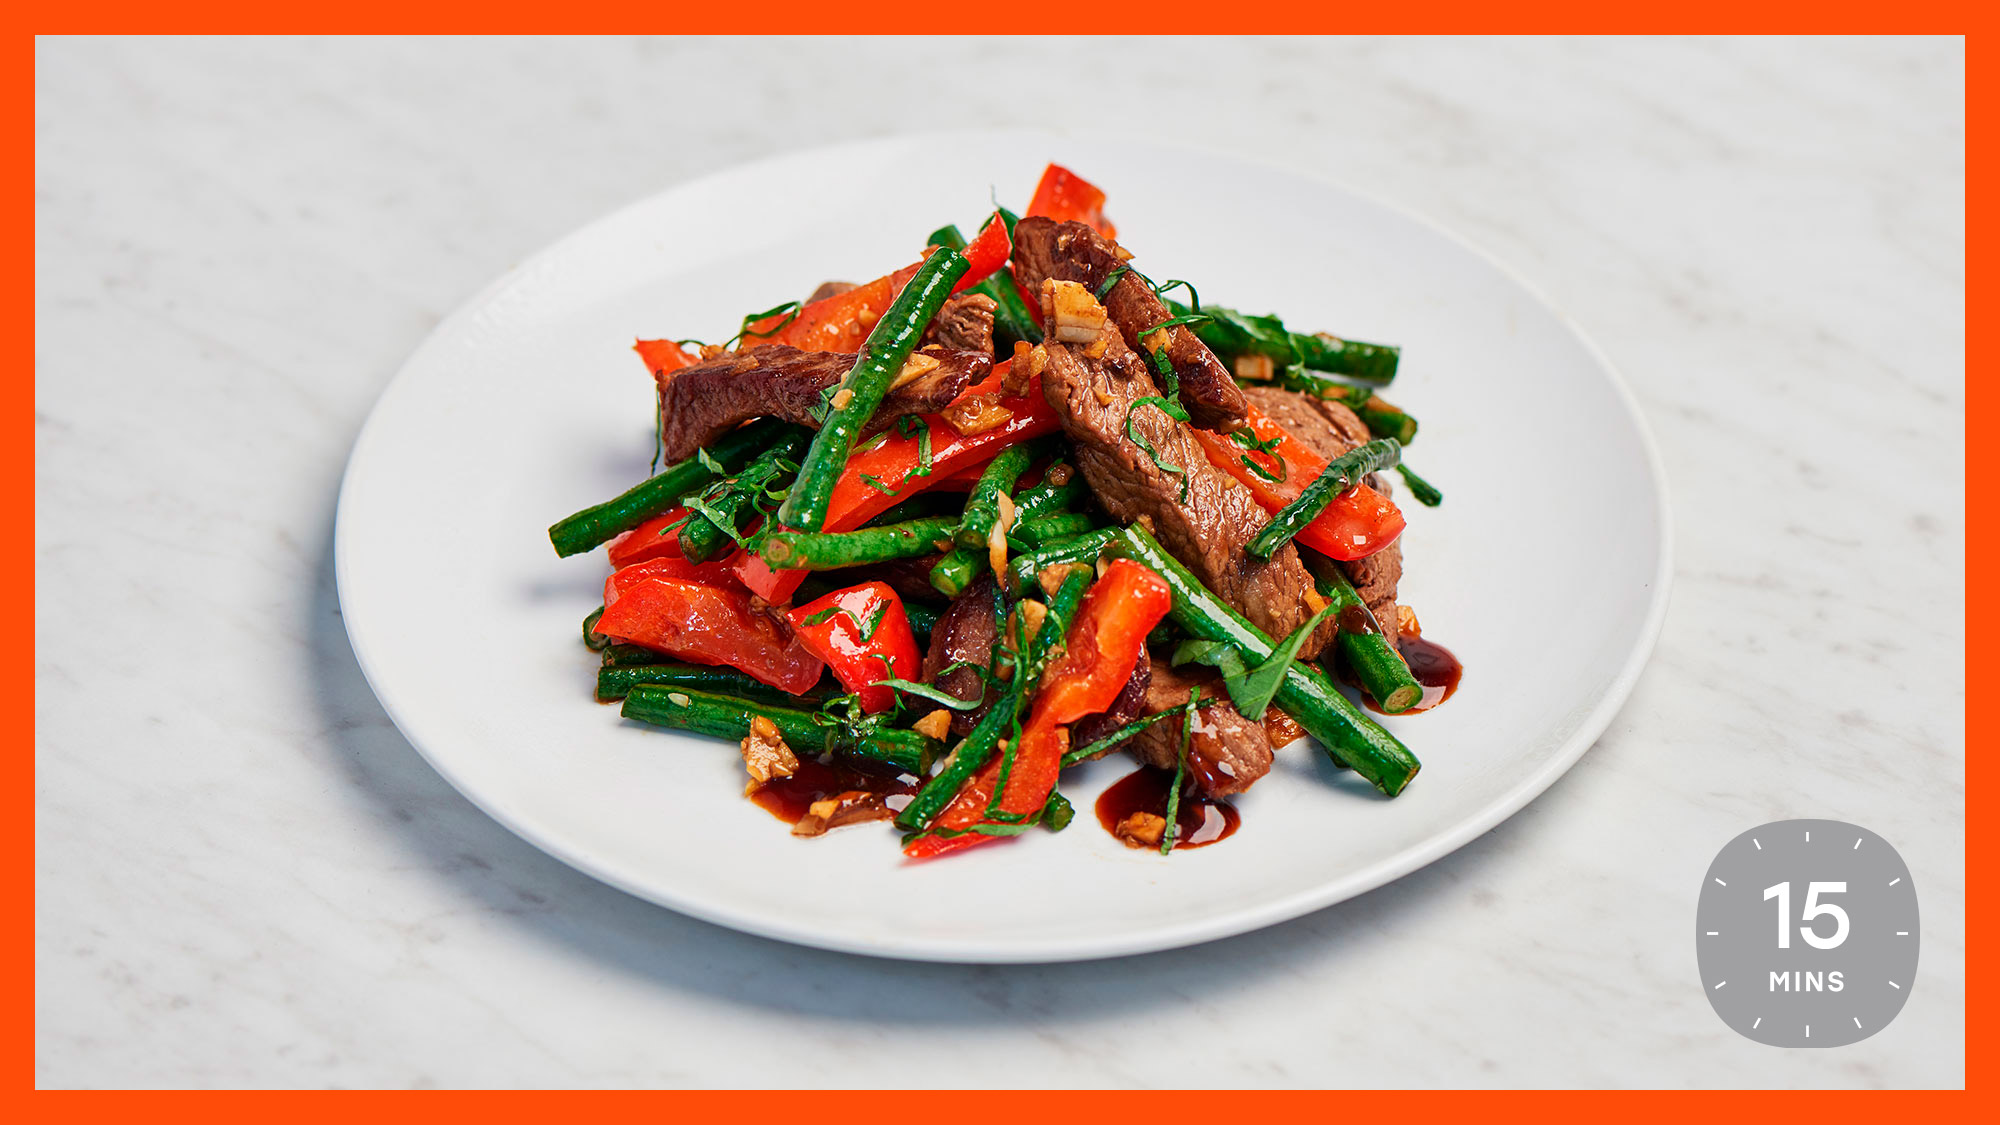 Spicy-Beef-with-Basil-and-Long-Beans-Frame.jpg